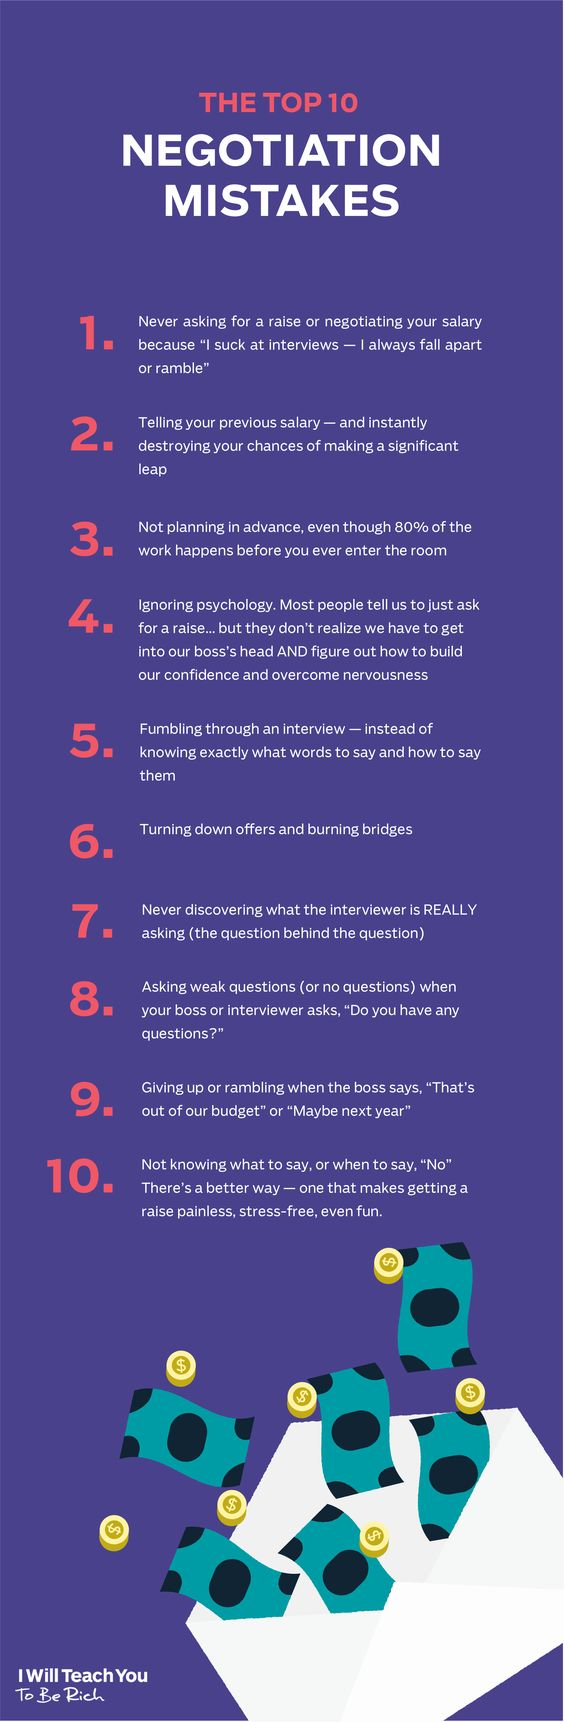 the top negotiation miskates from the ultimate guide to asking the top 10 negotiation miskates from the ultimate guide to asking for a raise